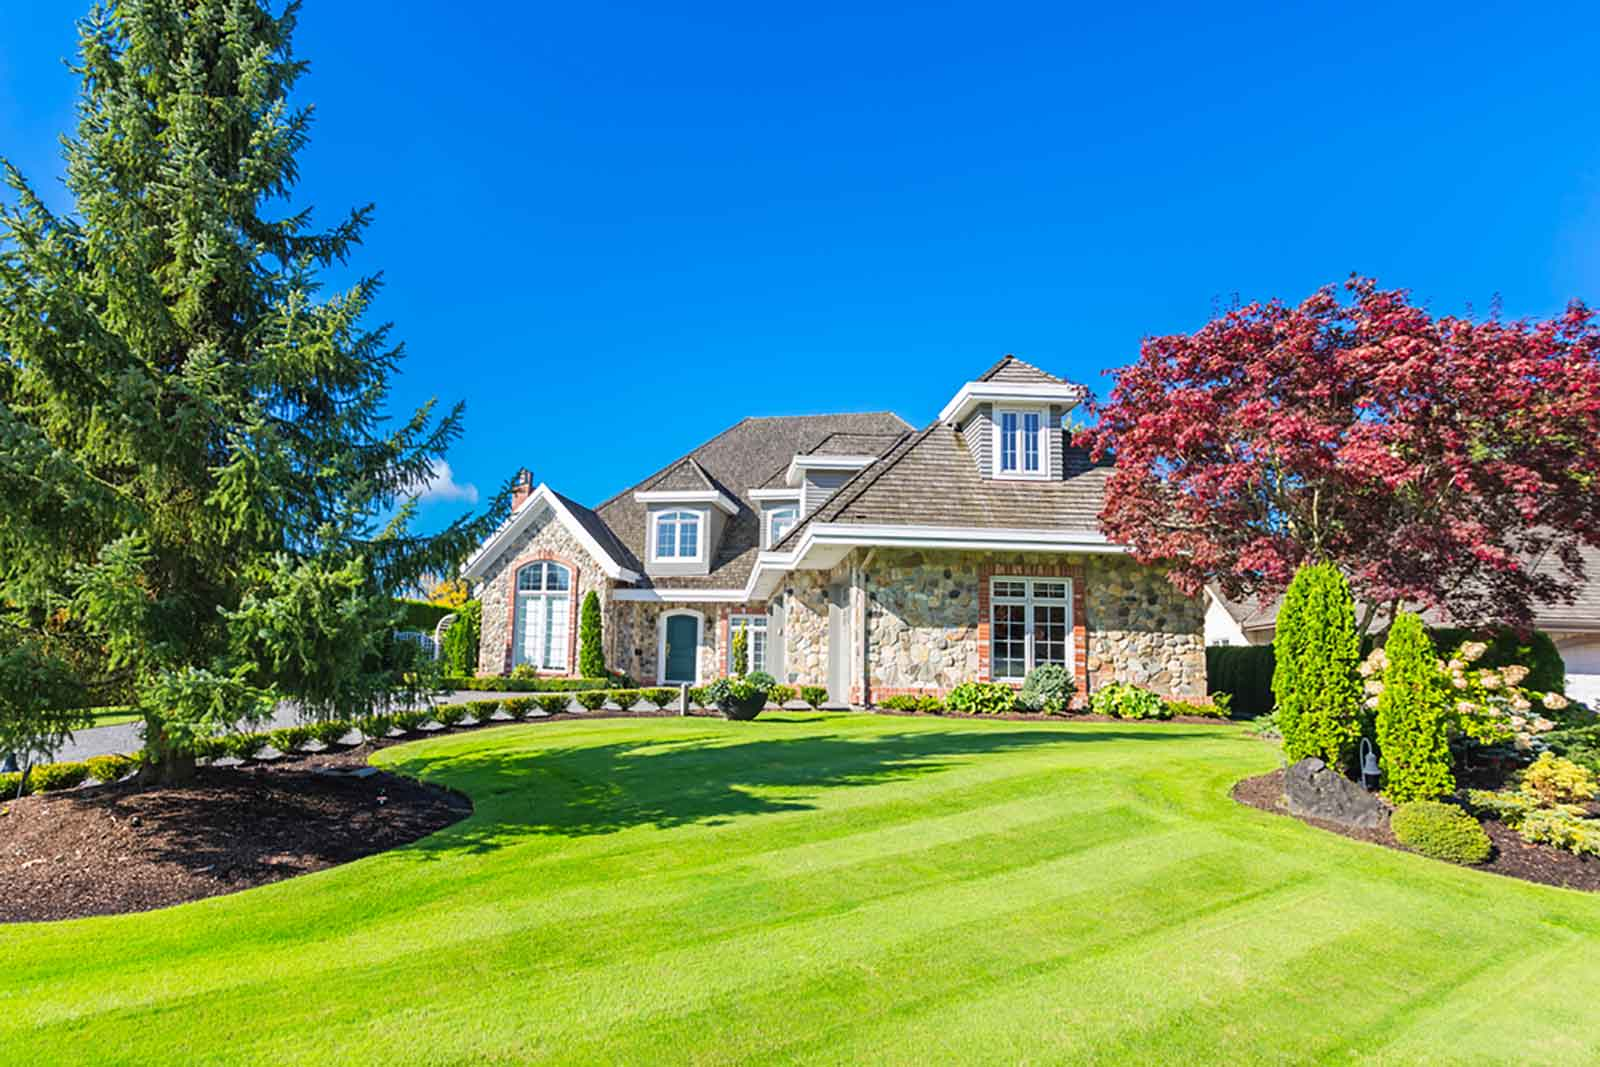 large house with a beautiful lawn and landscaping